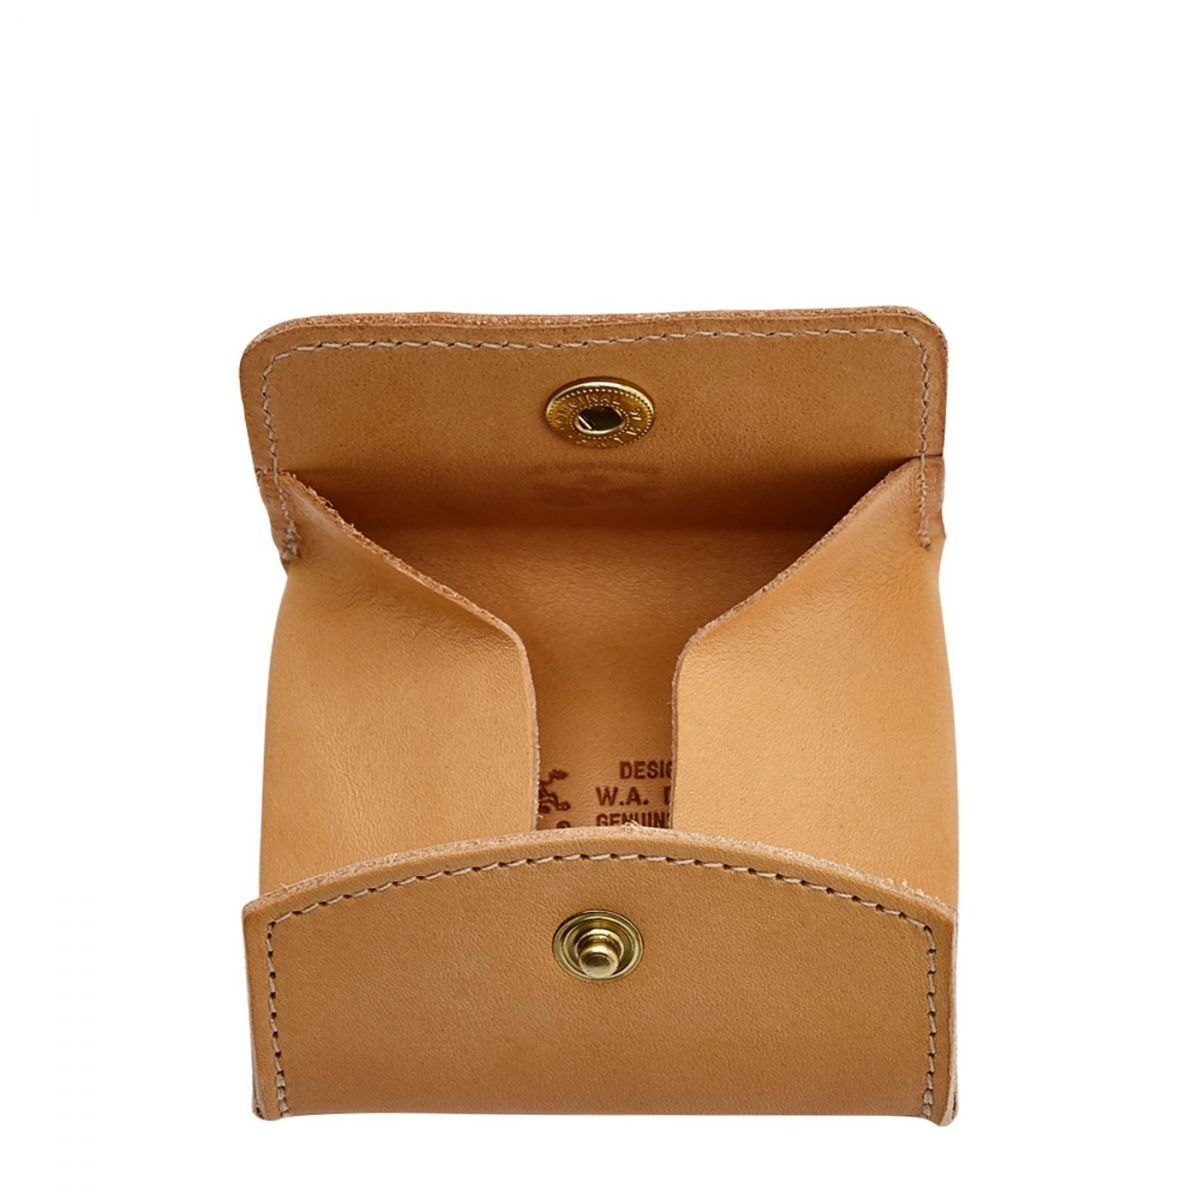 Coin Purse in Cowhide Double Leather color Natural - SCP020 | Details